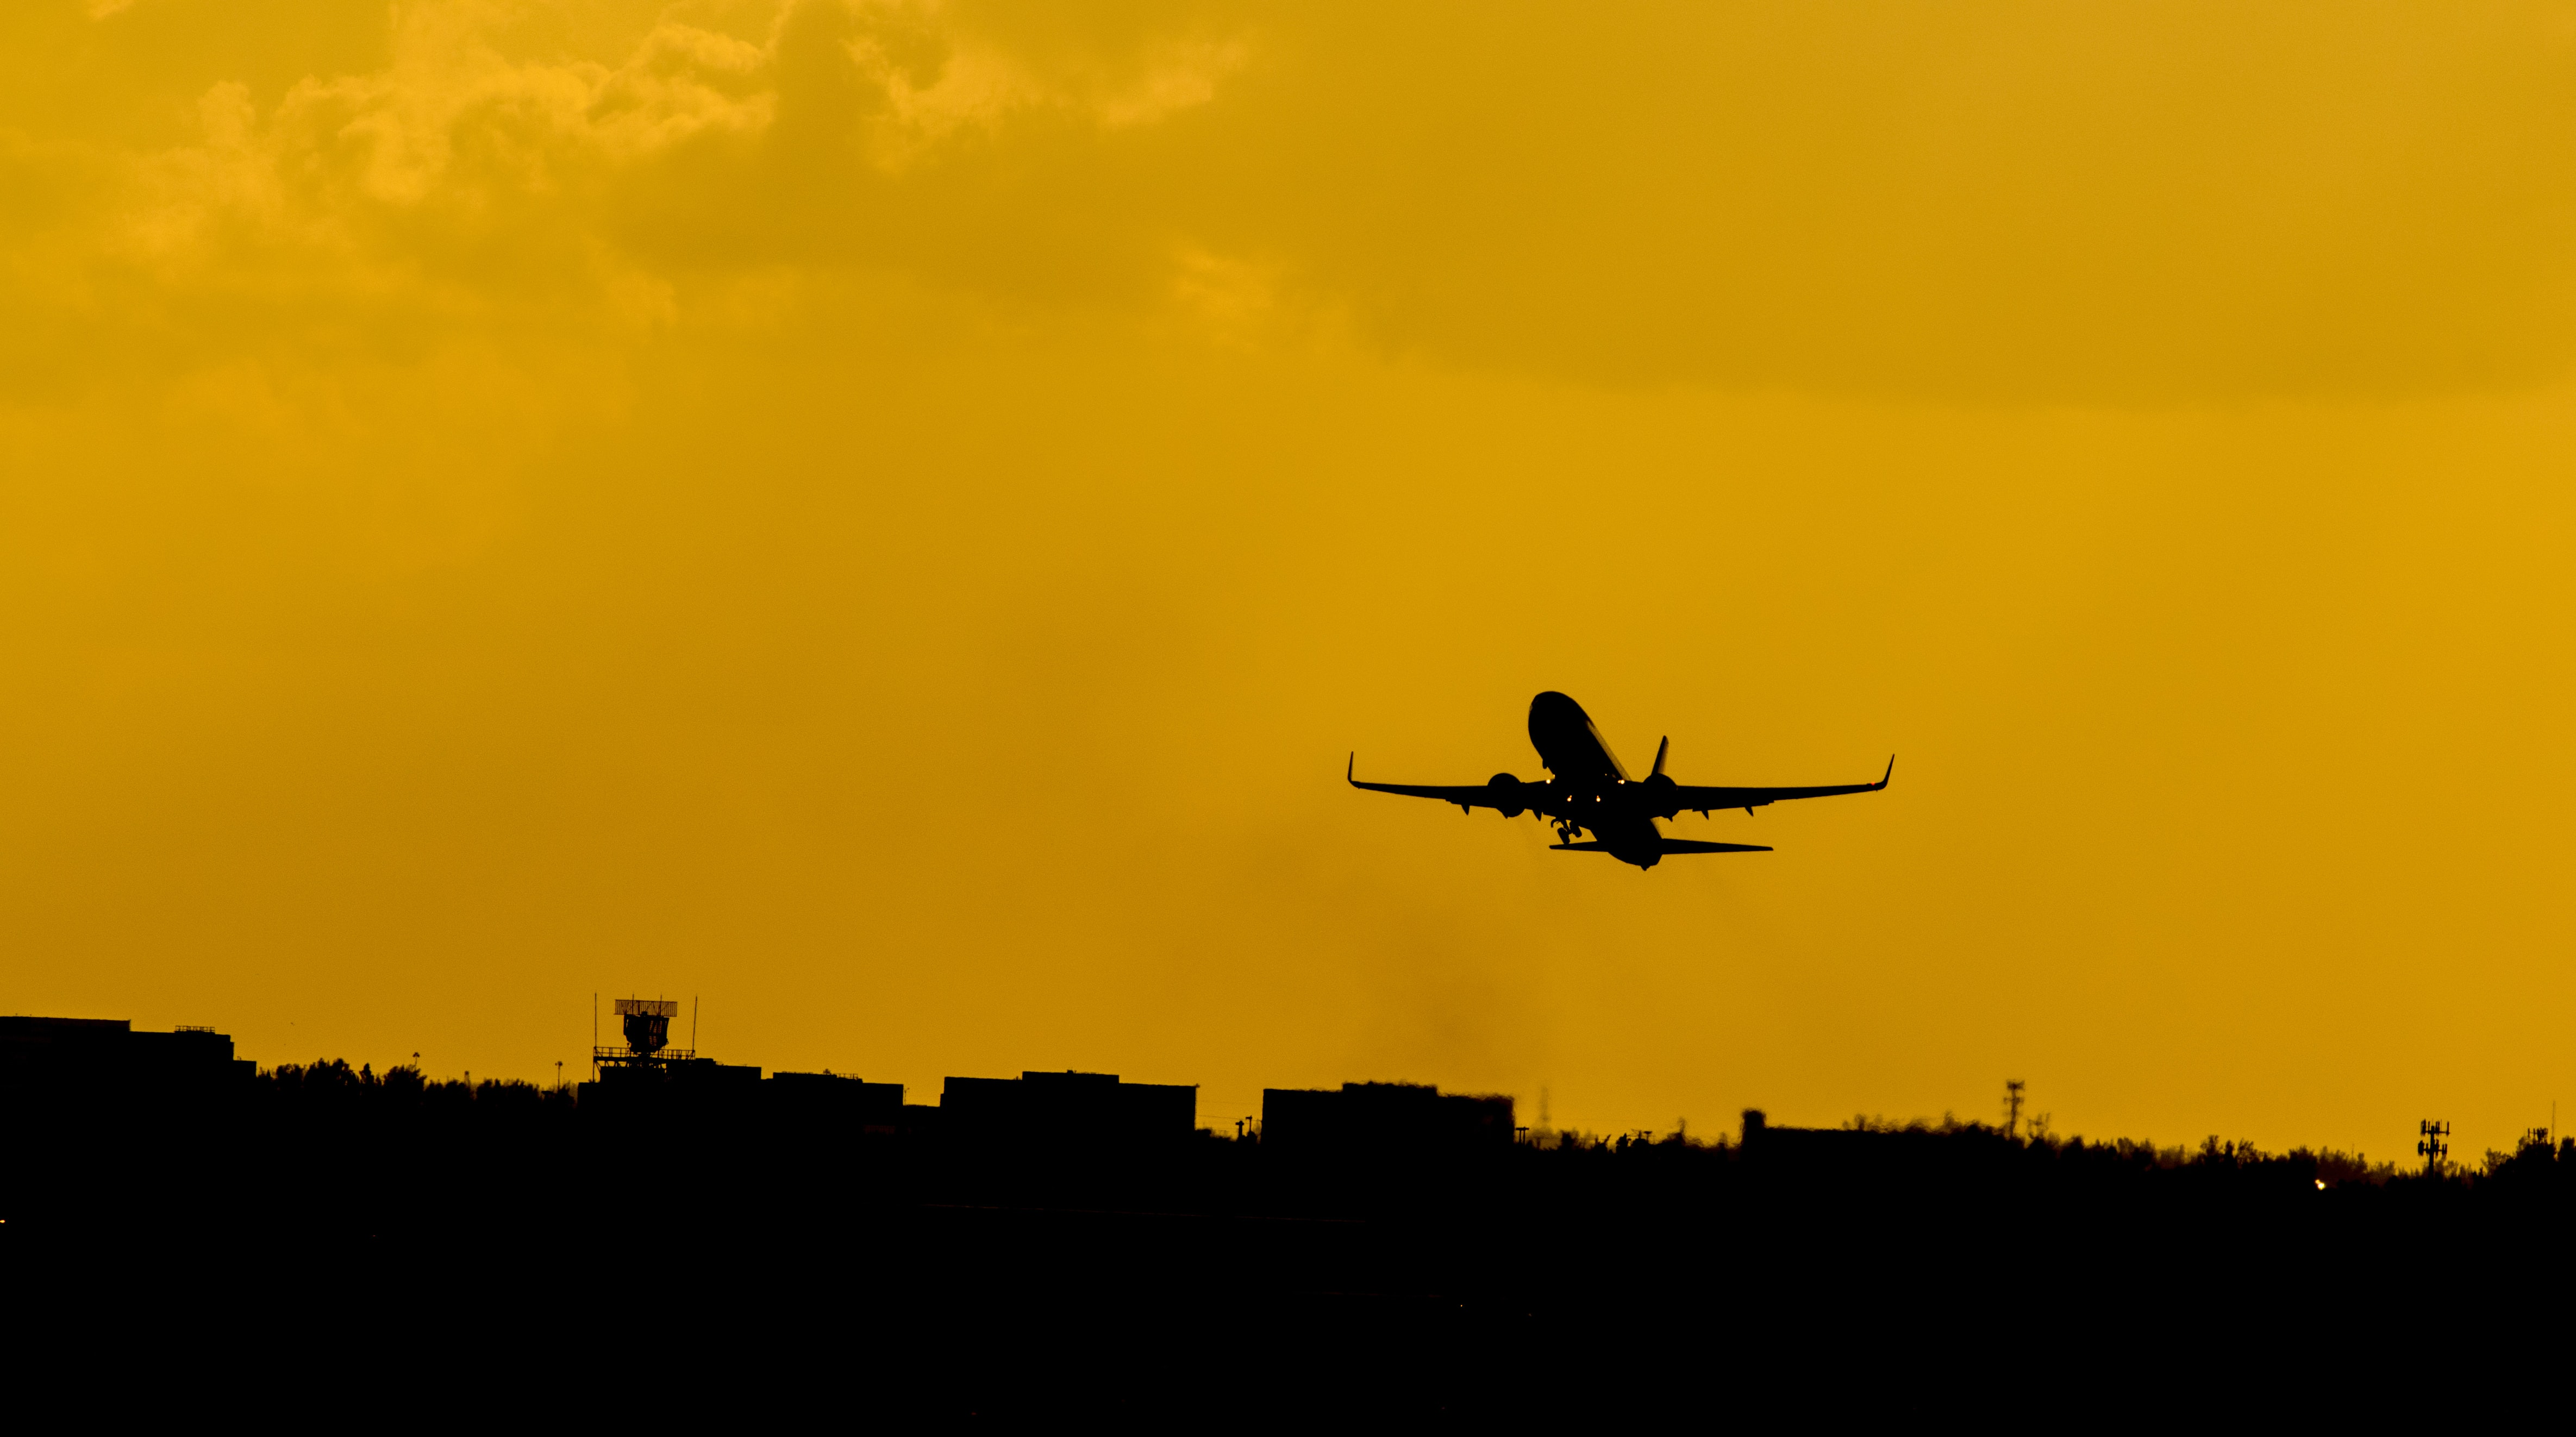 A silhouette of an airplane against an orange sky over an airport